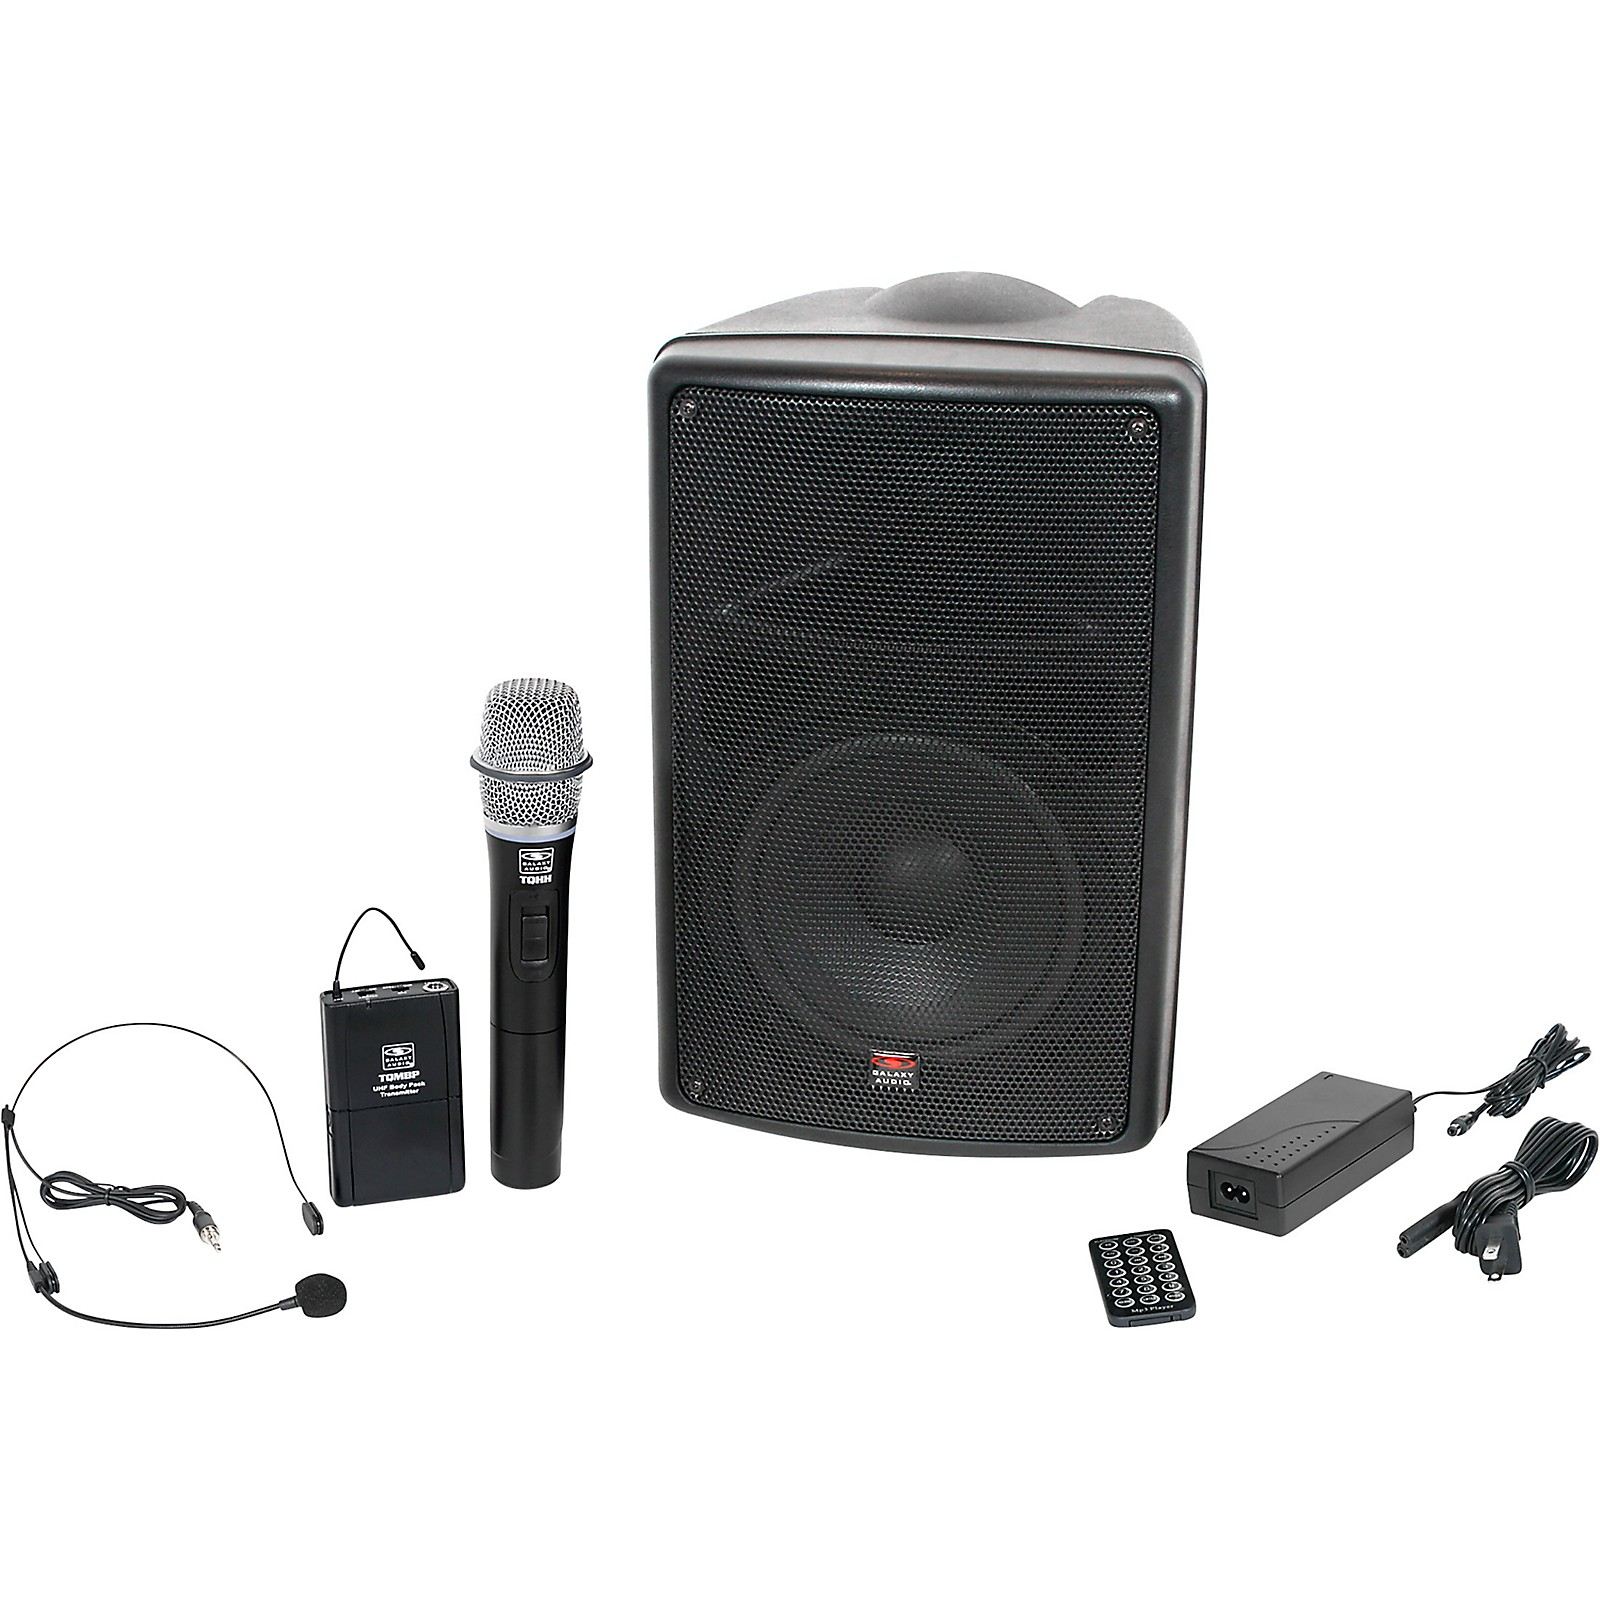 Galaxy Audio TQ8-24HSN Traveler Quest 8 All-In-One Portable PA System With Two Receivers, One Handheld Microphone, and One Headset Microphone